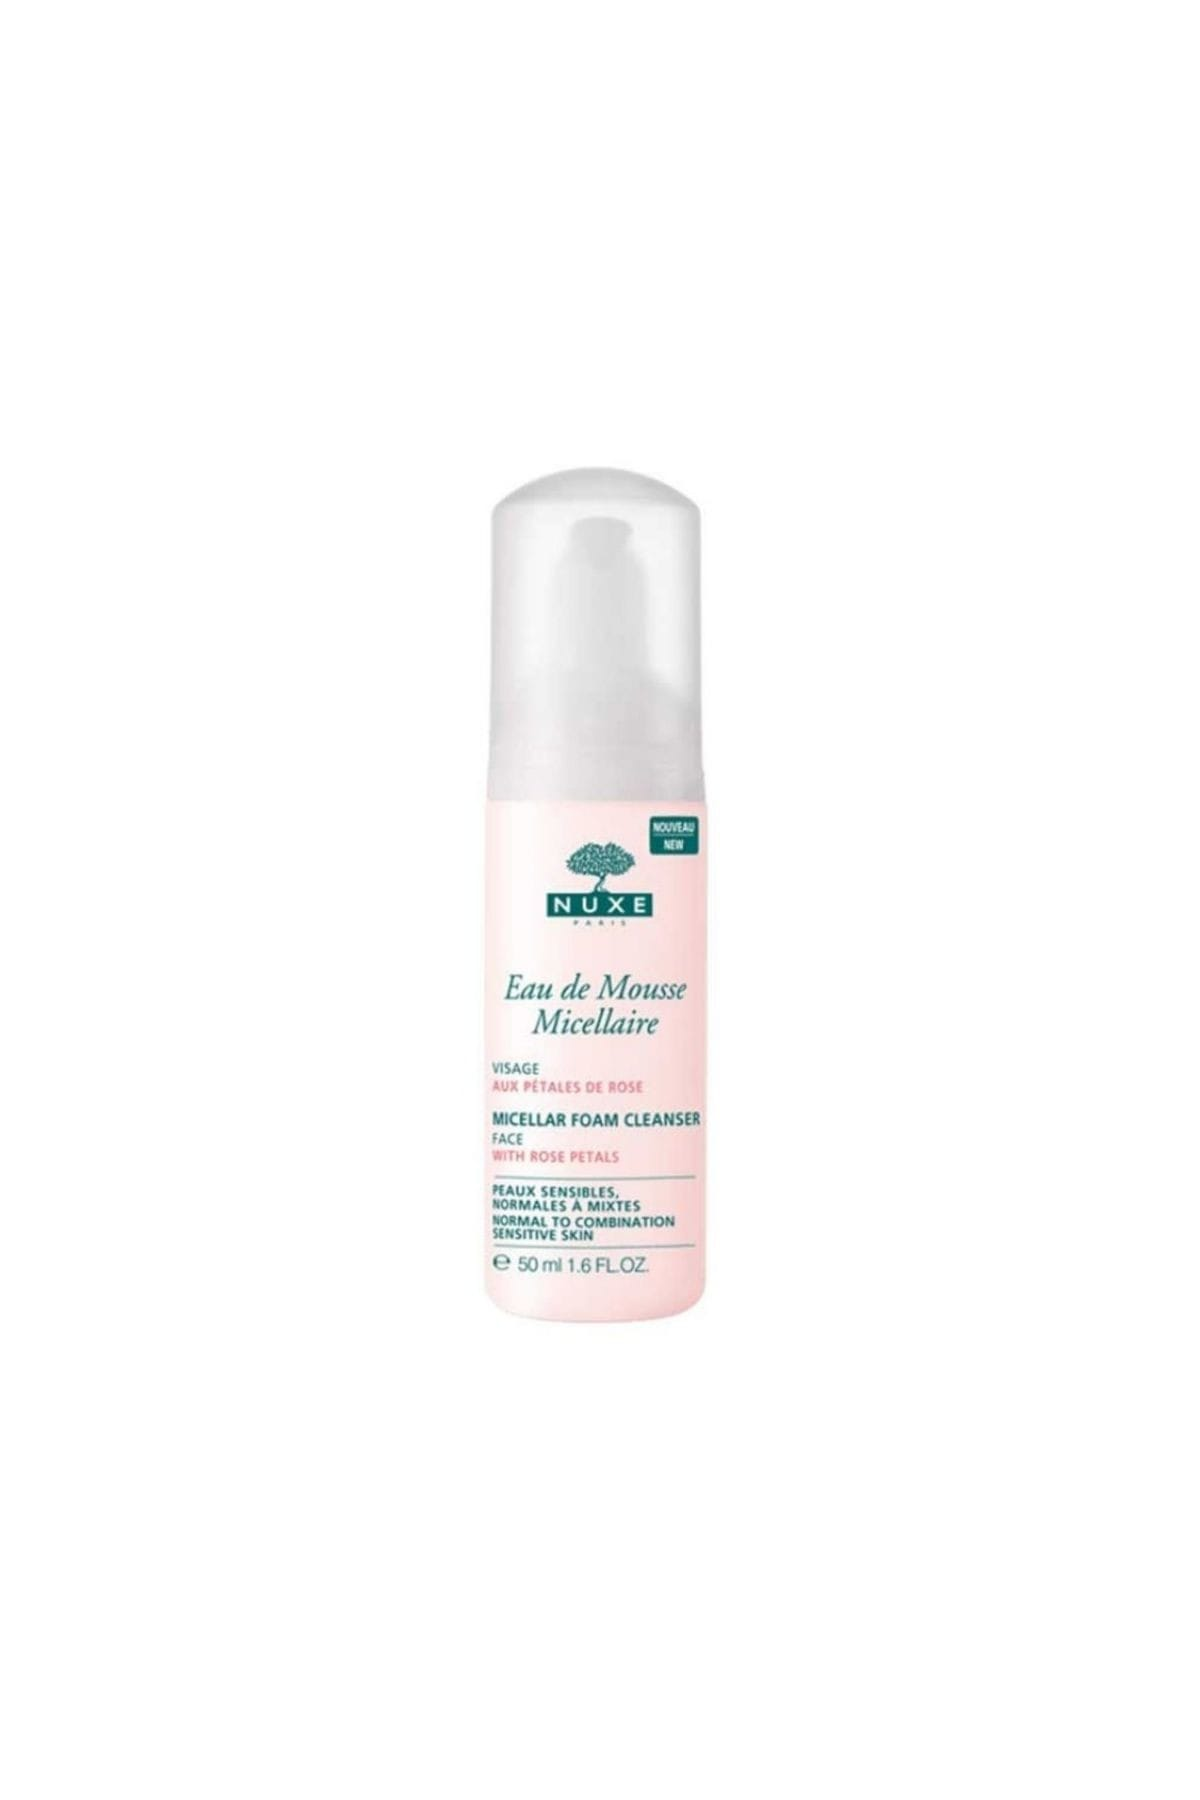 Nuxe Micellar Foam Cleanser with Rose Petals (For Normal to Combination Sensitive Skin) 50ml